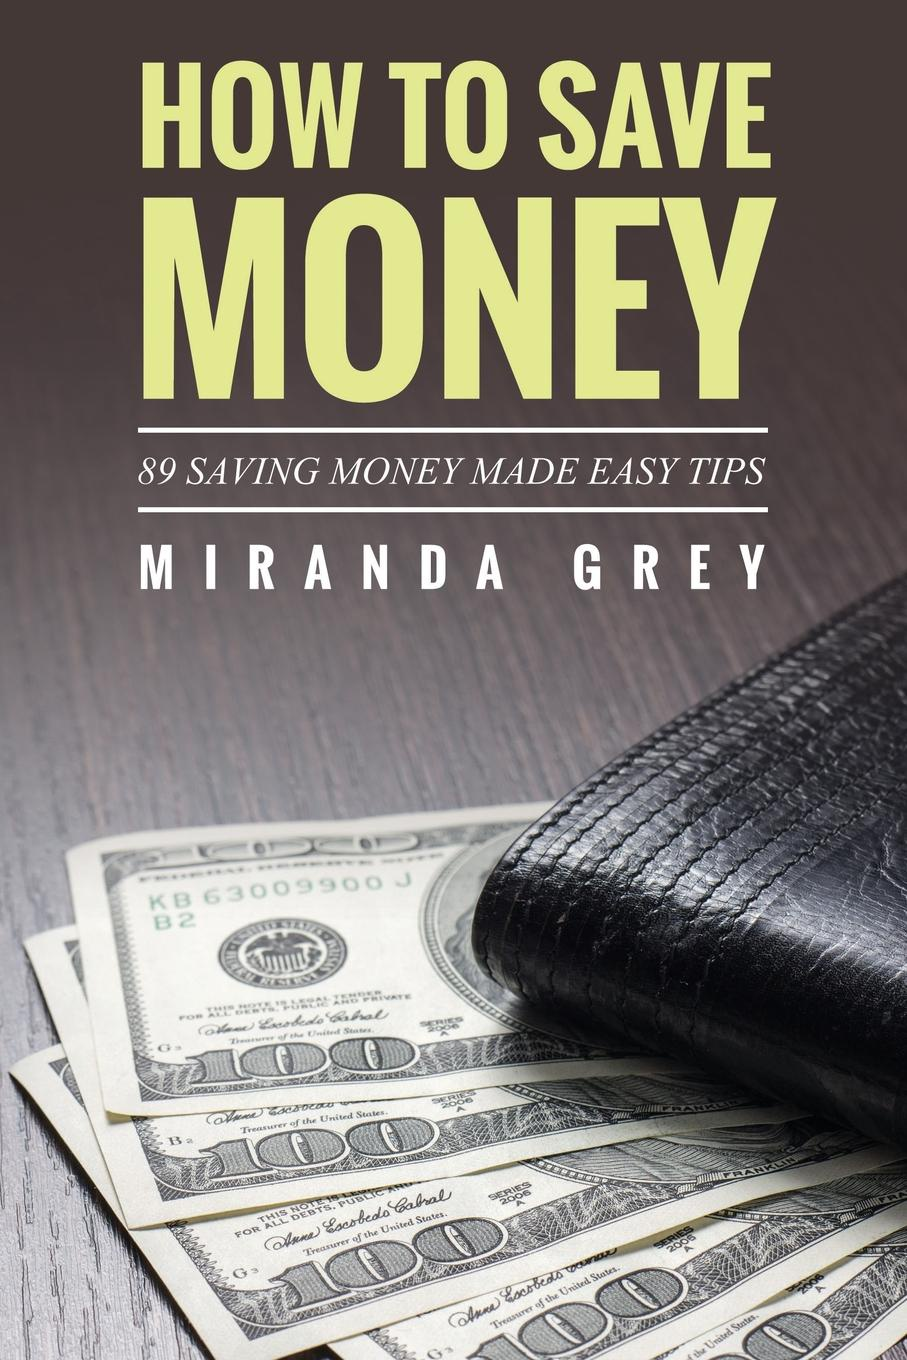 Miranda Grey How to Save Money 89 Saving Money Made Easy Tips paul muolo $700 billion bailout the emergency economic stabilization act and what it means to you your money your mortgage and your taxes